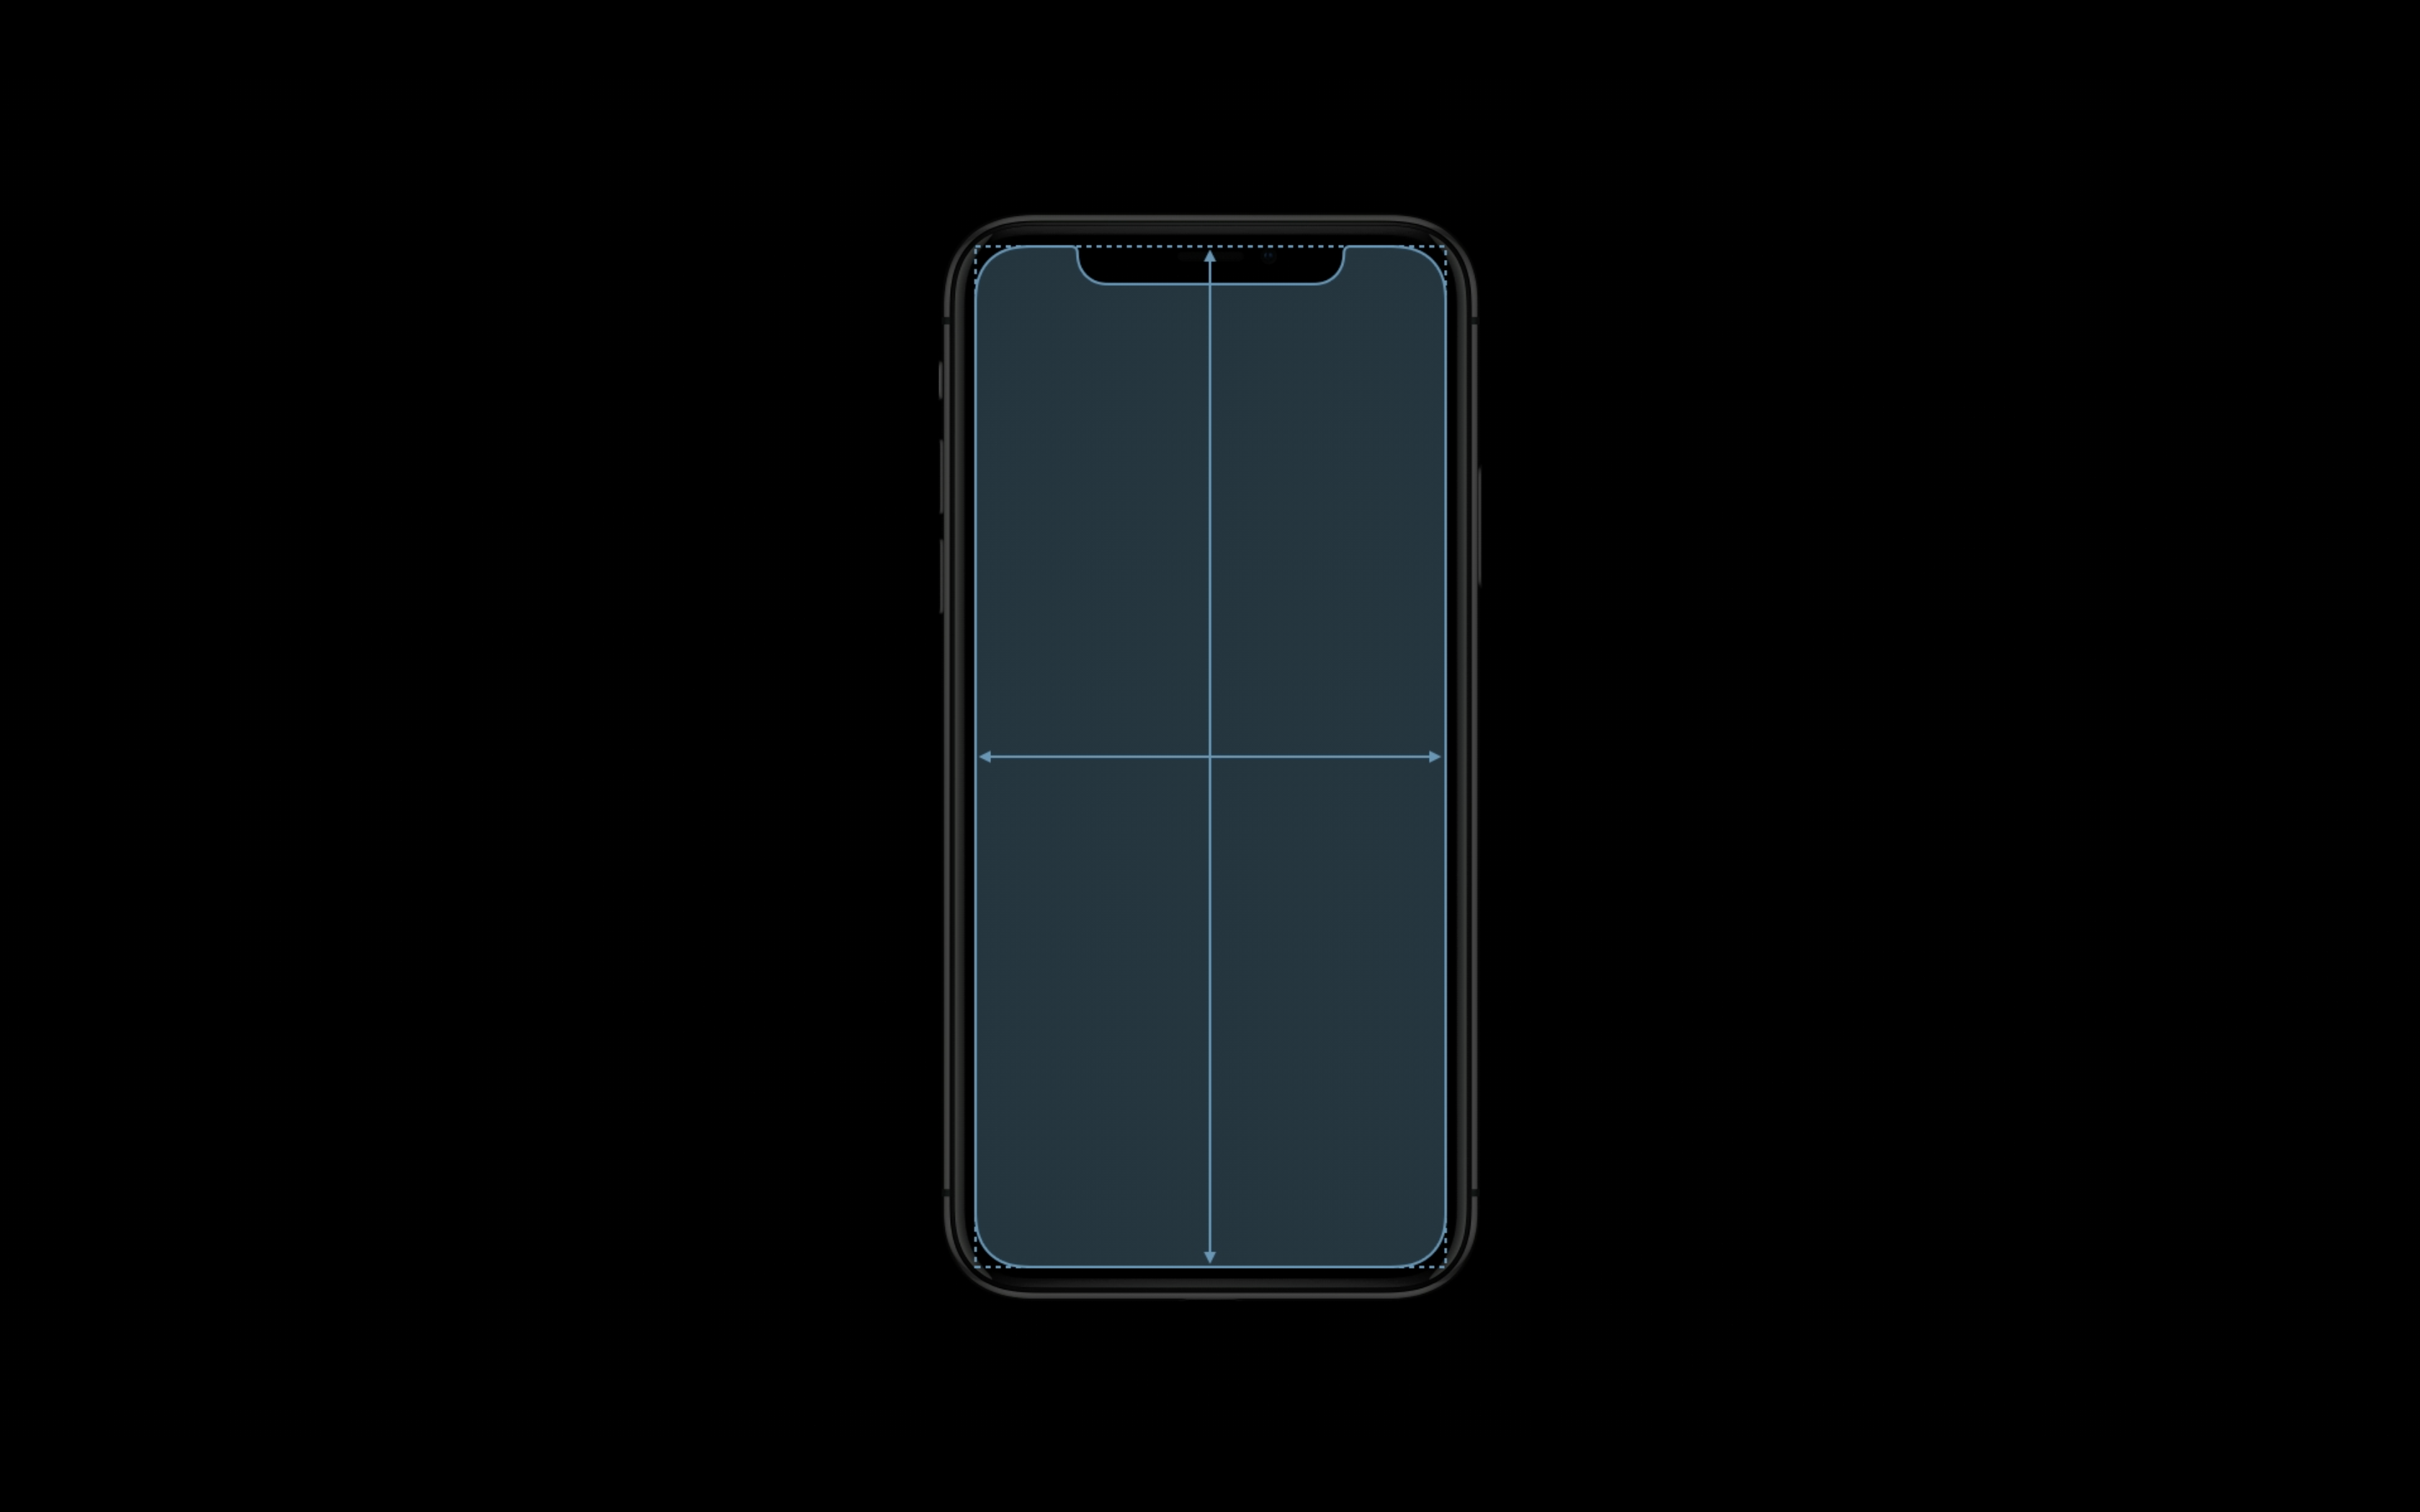 iphone 11 display notch leaked images